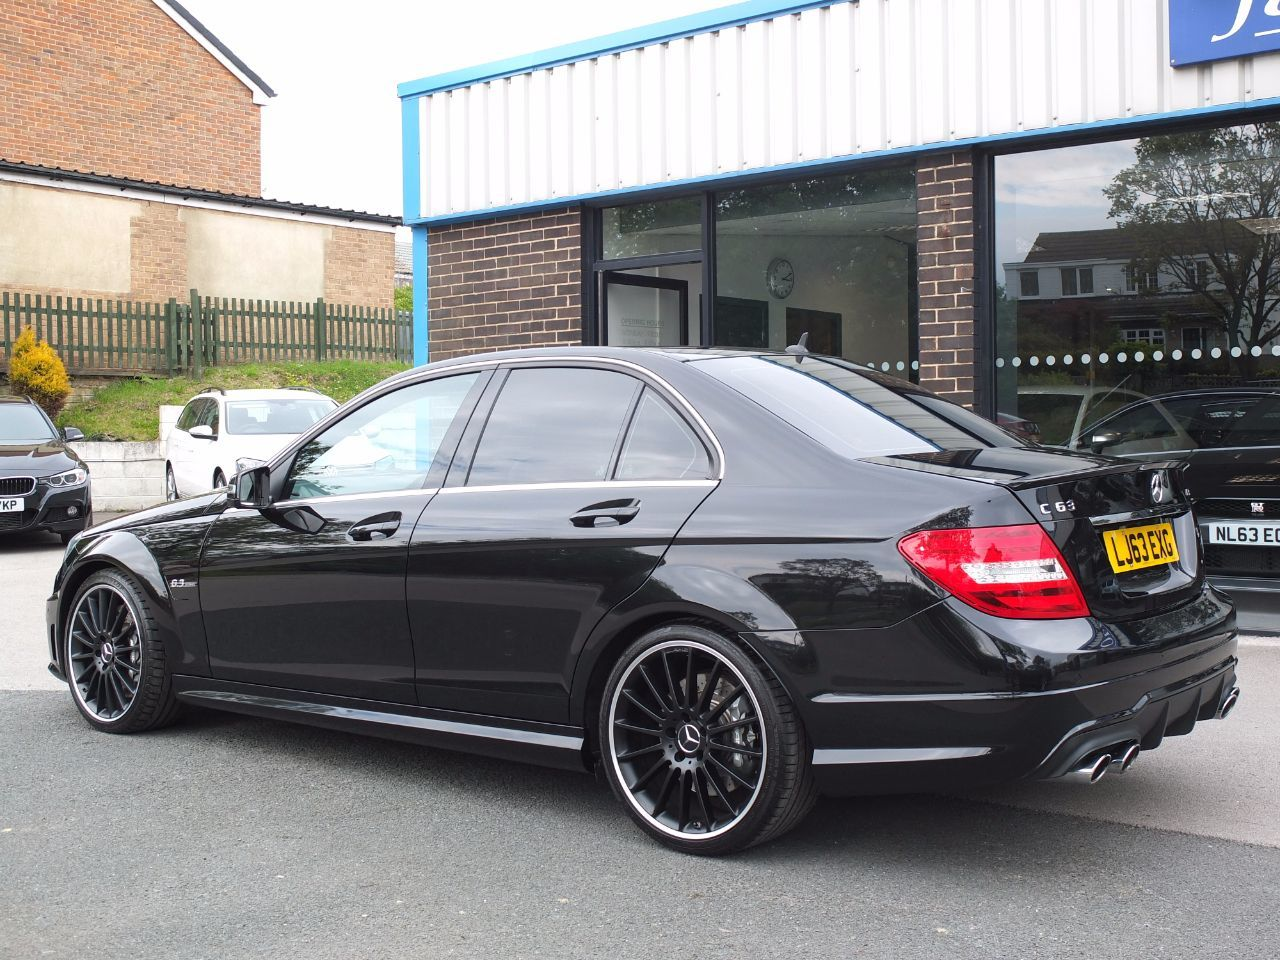 Mercedes-Benz C Class 6.2 C63 AMG MCT 7 Speed Auto Saloon Petrol Obsidian Black Metallic